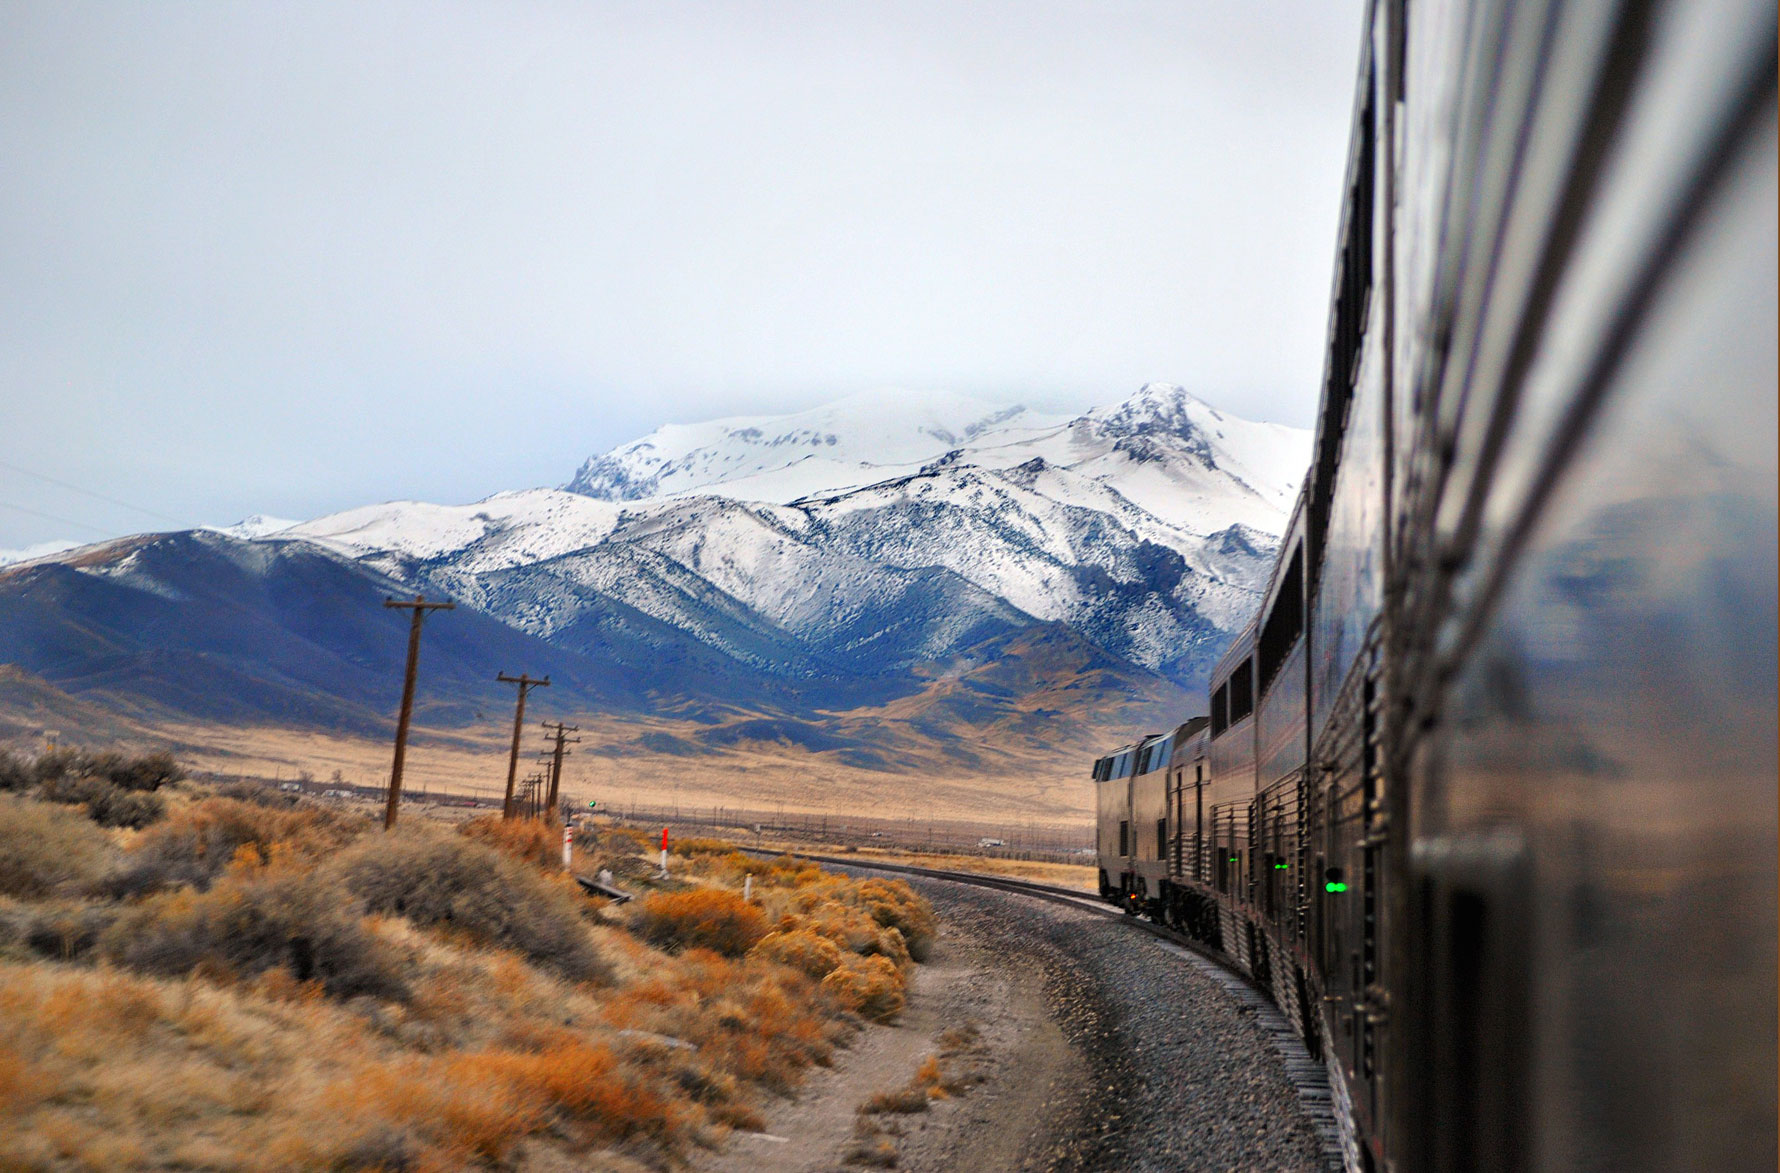 Of The Most Scenic Train Rides Train Travel USA - Amtrak us map vacations scenic